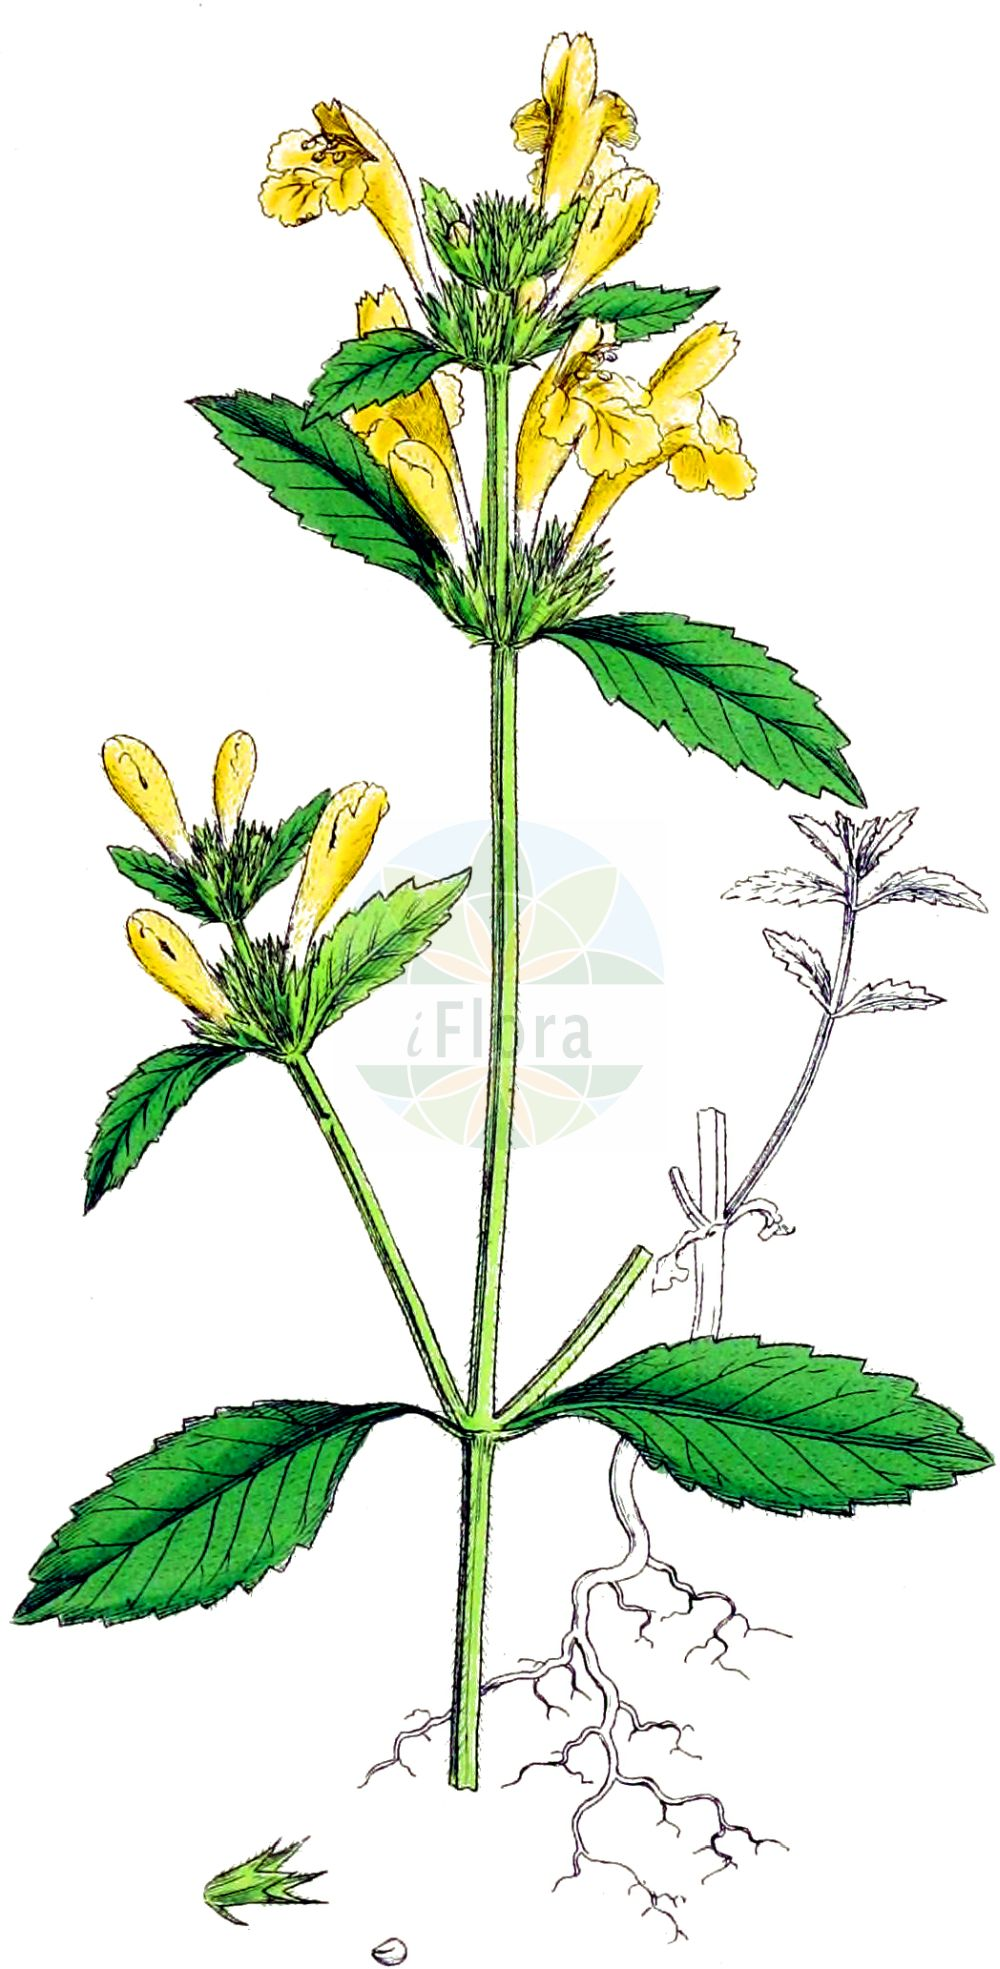 Historische Abbildung von Galeopsis segetum (Gelber Hohlzahn - Downy Hemp-nettle). Das Bild zeigt Blatt, Bluete, Frucht und Same. ---- Historical Drawing of Galeopsis segetum (Gelber Hohlzahn - Downy Hemp-nettle).The image is showing leaf, flower, fruit and seed.(Galeopsis segetum,Gelber Hohlzahn,Downy Hemp-nettle,Dalanum segetum,Galeopsis dubia,Galeopsis elegans,Galeopsis grandiflora,Galeopsis ochroleuca,Galeopsis segetum,Galeopsis villosa,Ladanella segetum,Ladanum dubium,Ladanum luteum,Ladanum ochroleucum,Tetrahit longiflorum,Gelber Hohlzahn,Saat-Hohlzahn,Downy Hemp-nettle,Yellow Hemp-nettle,Galeopsis,Hohlzahn,Hempnettle,Lamiaceae,Lippenbluetengewaechse,Lippenbluetler,Nettle family,Blatt,Bluete,Frucht,Same,leaf,flower,fruit,seed,Sowerby (1790-1813))